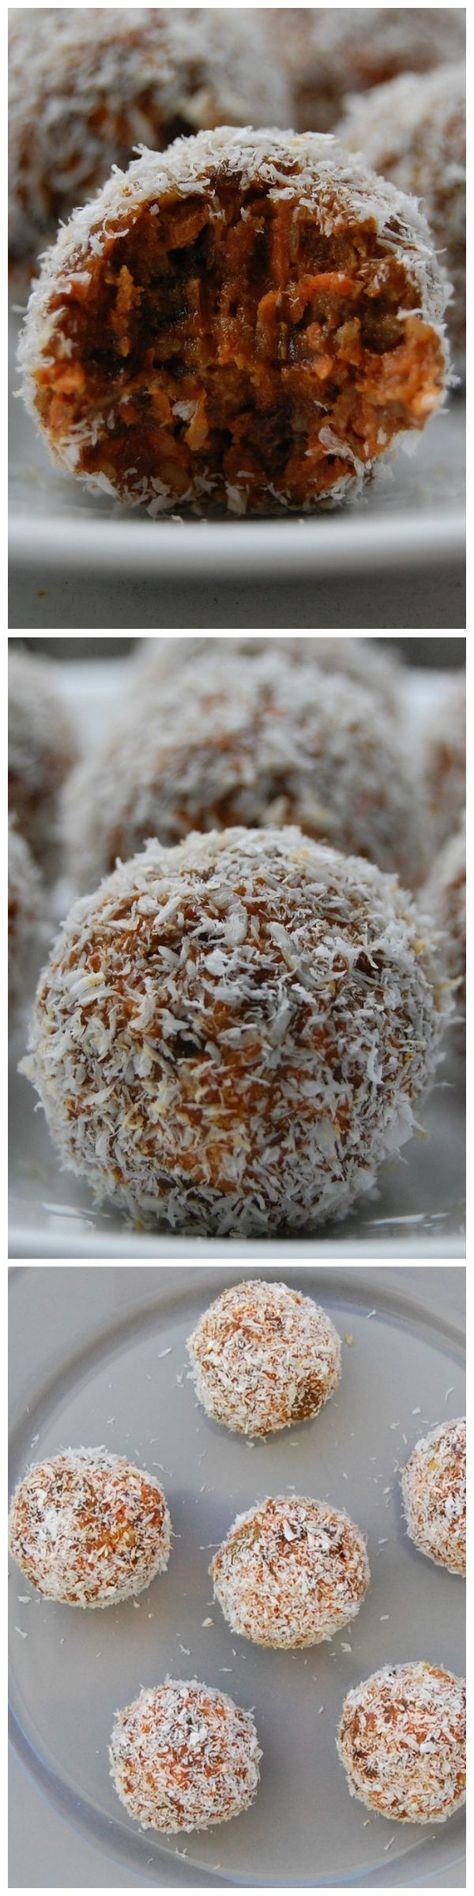 Carrot Cake Balls - These healthy energy bites taste just like carrot cake but in a small bite sized portion!! These are gluten-free, refined sugar free, raw and vegan